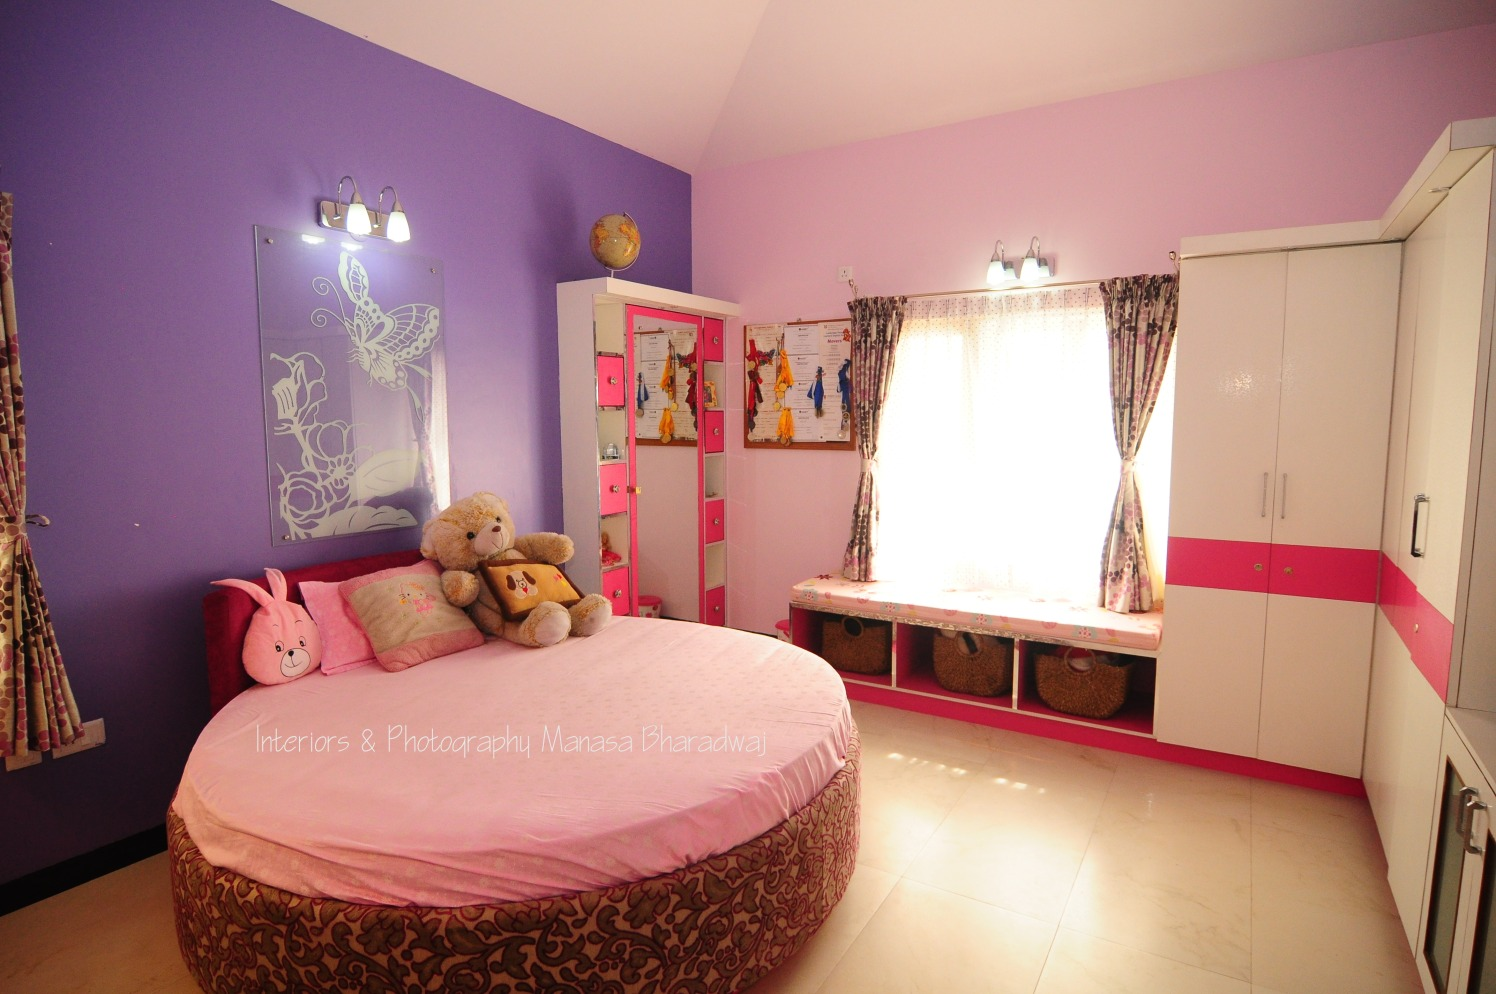 Pink Themed Kids bedroom with Circular Bed and Pink And White Closets by Manasa Bharadwaj Bedroom Modern | Interior Design Photos & Ideas